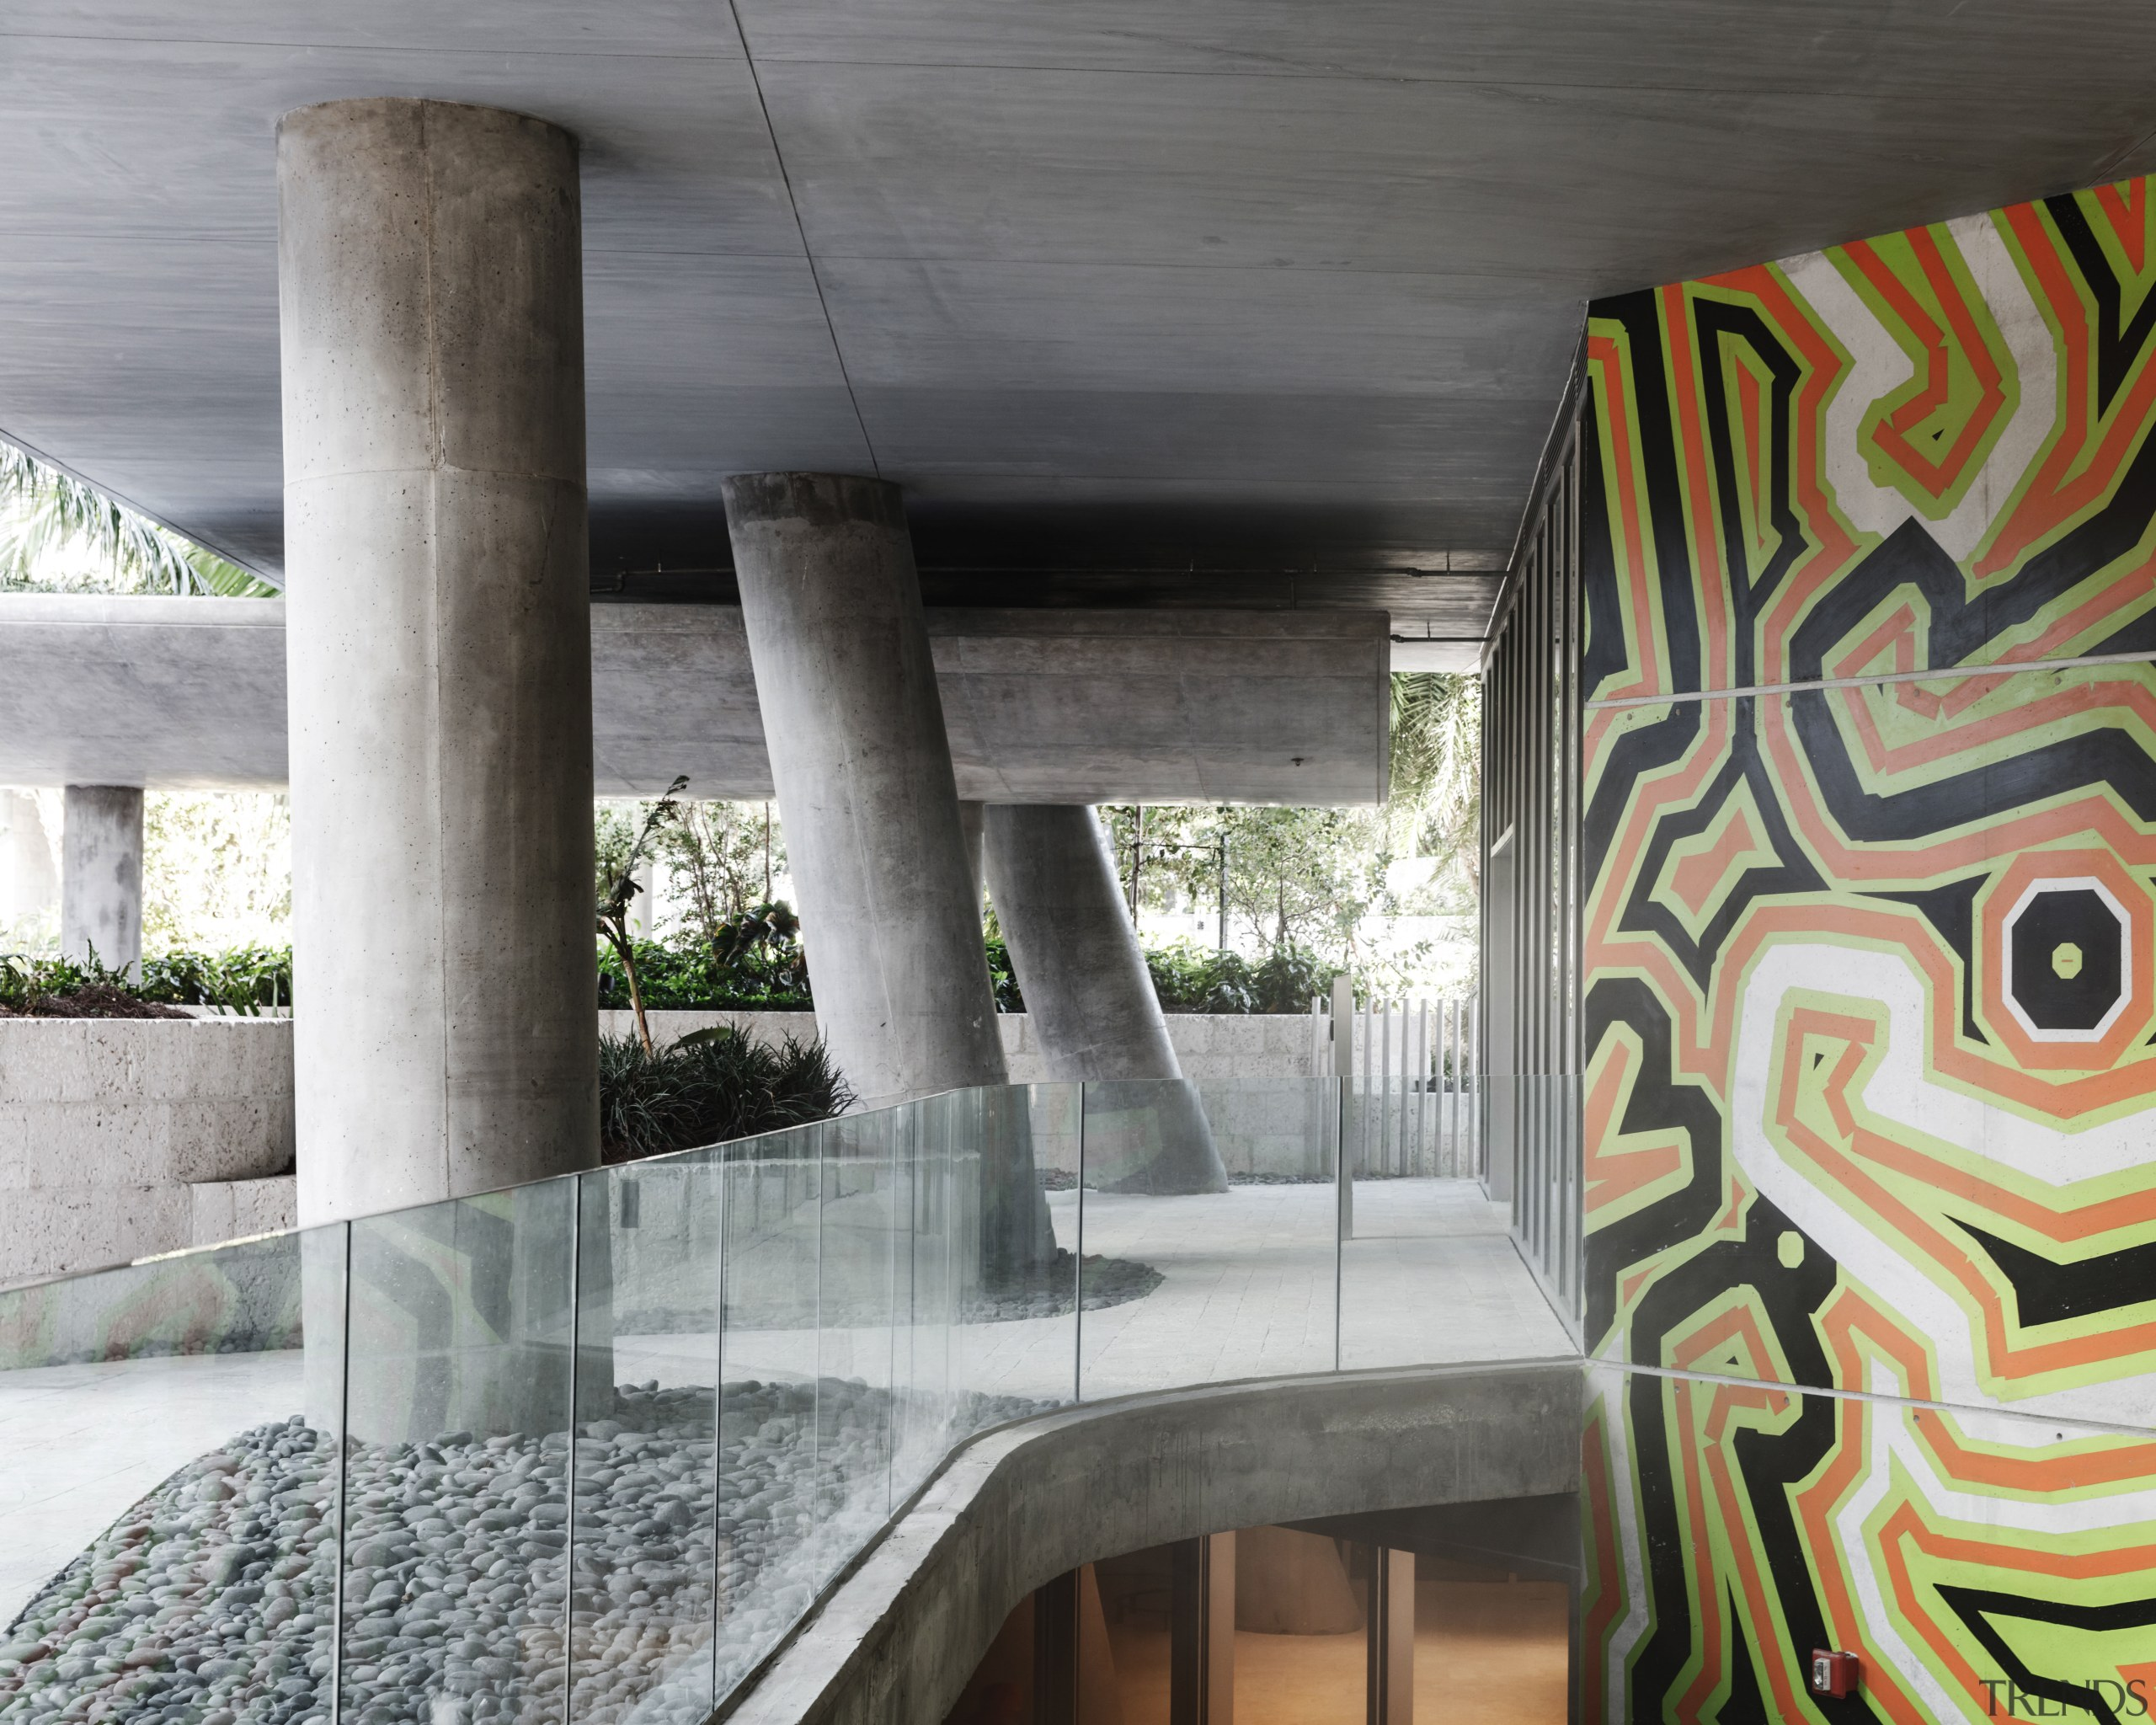 Murals add touches of vibrancy to the design architecture, structure, wall, gray